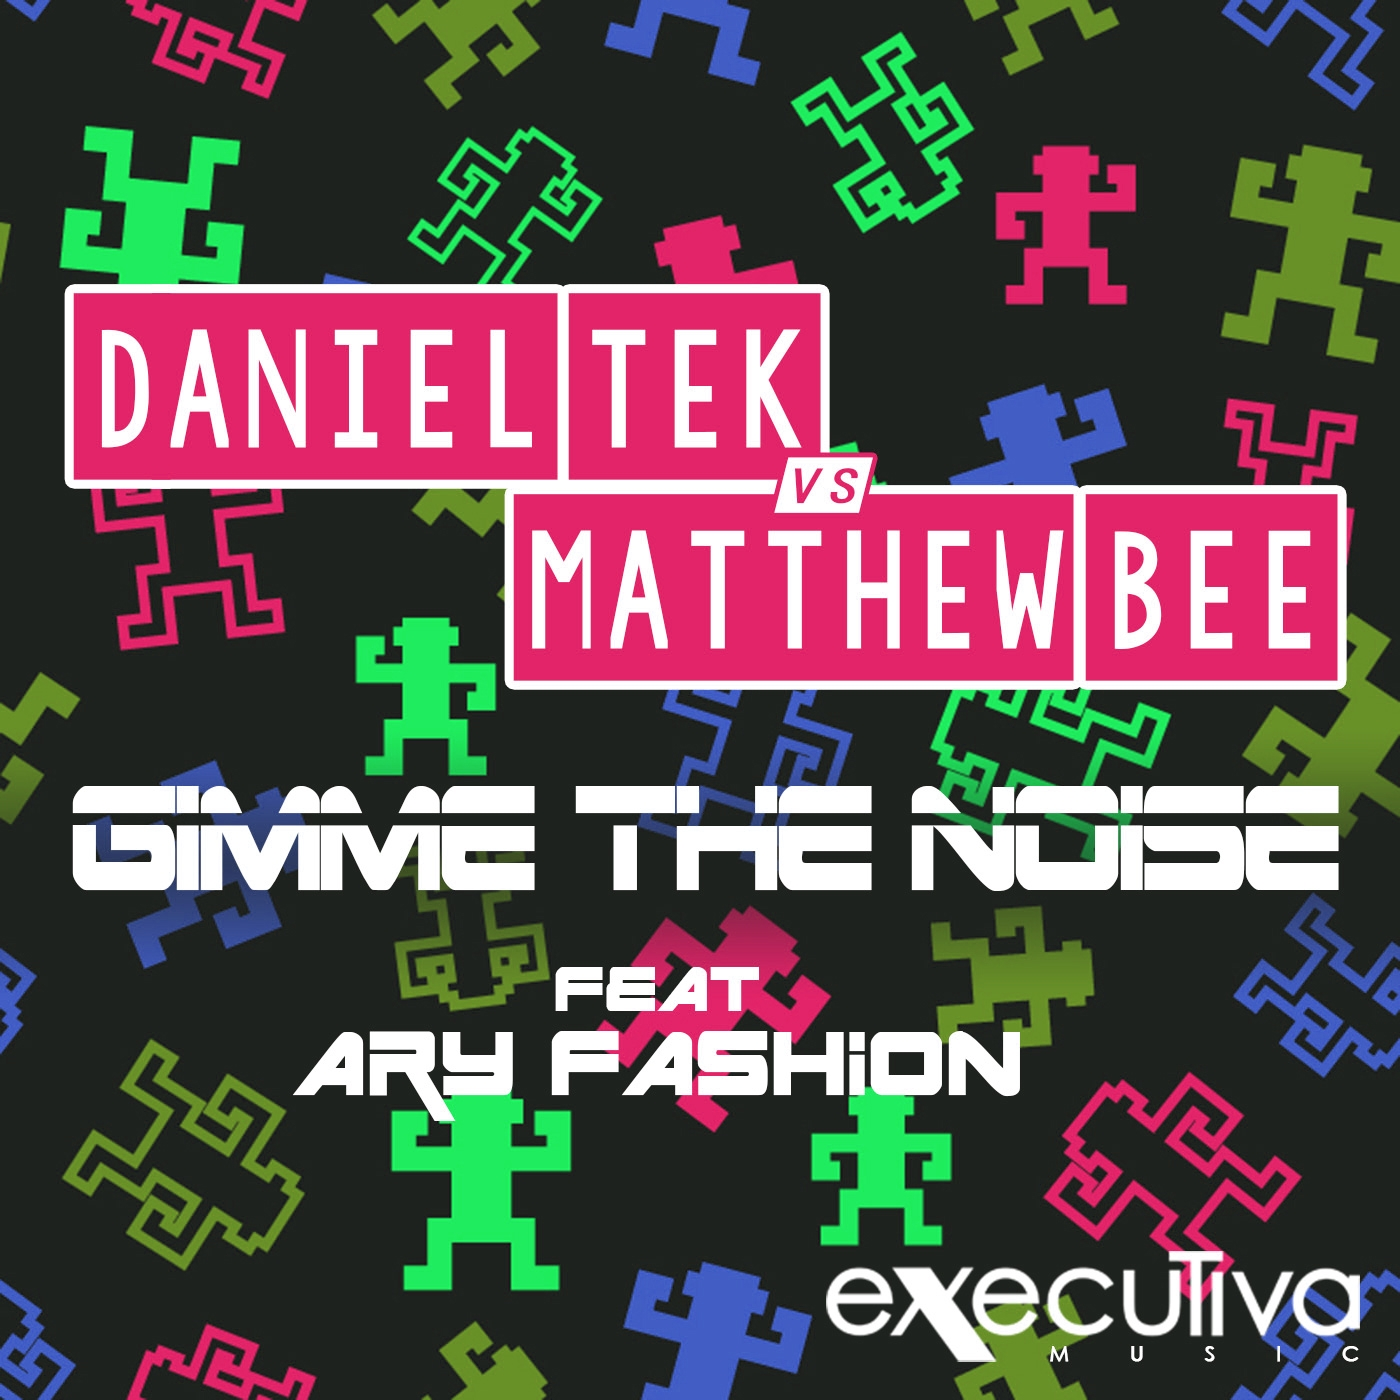 Daniel Tek & Matthew Bee - Gimme The Noise Feat. AryFashion (Rumvle Remix)